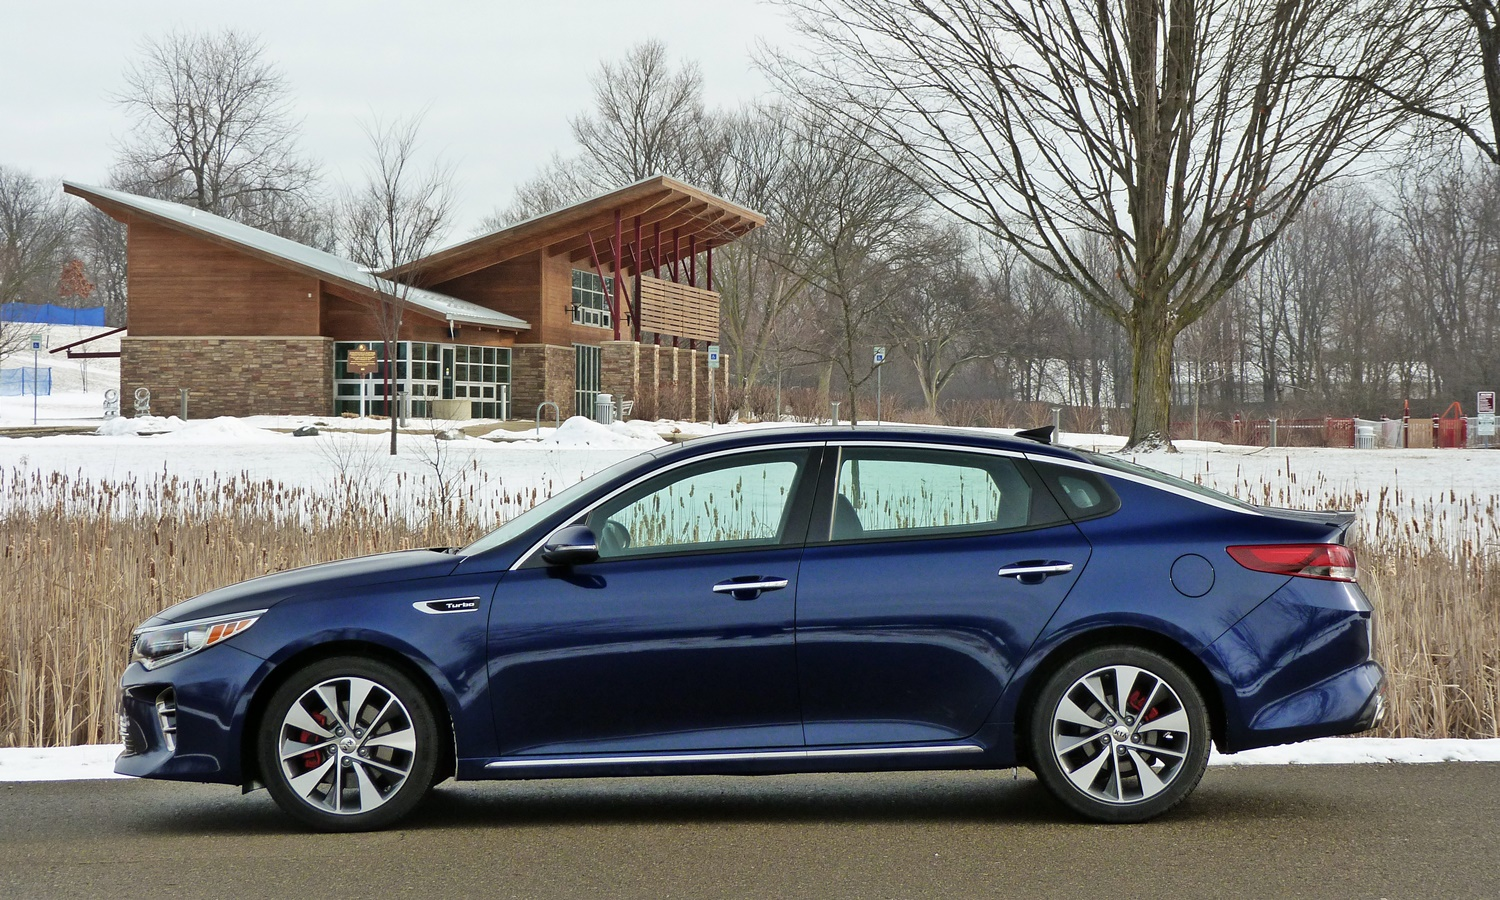 Kia Stinger Photos: Kia Optima side view